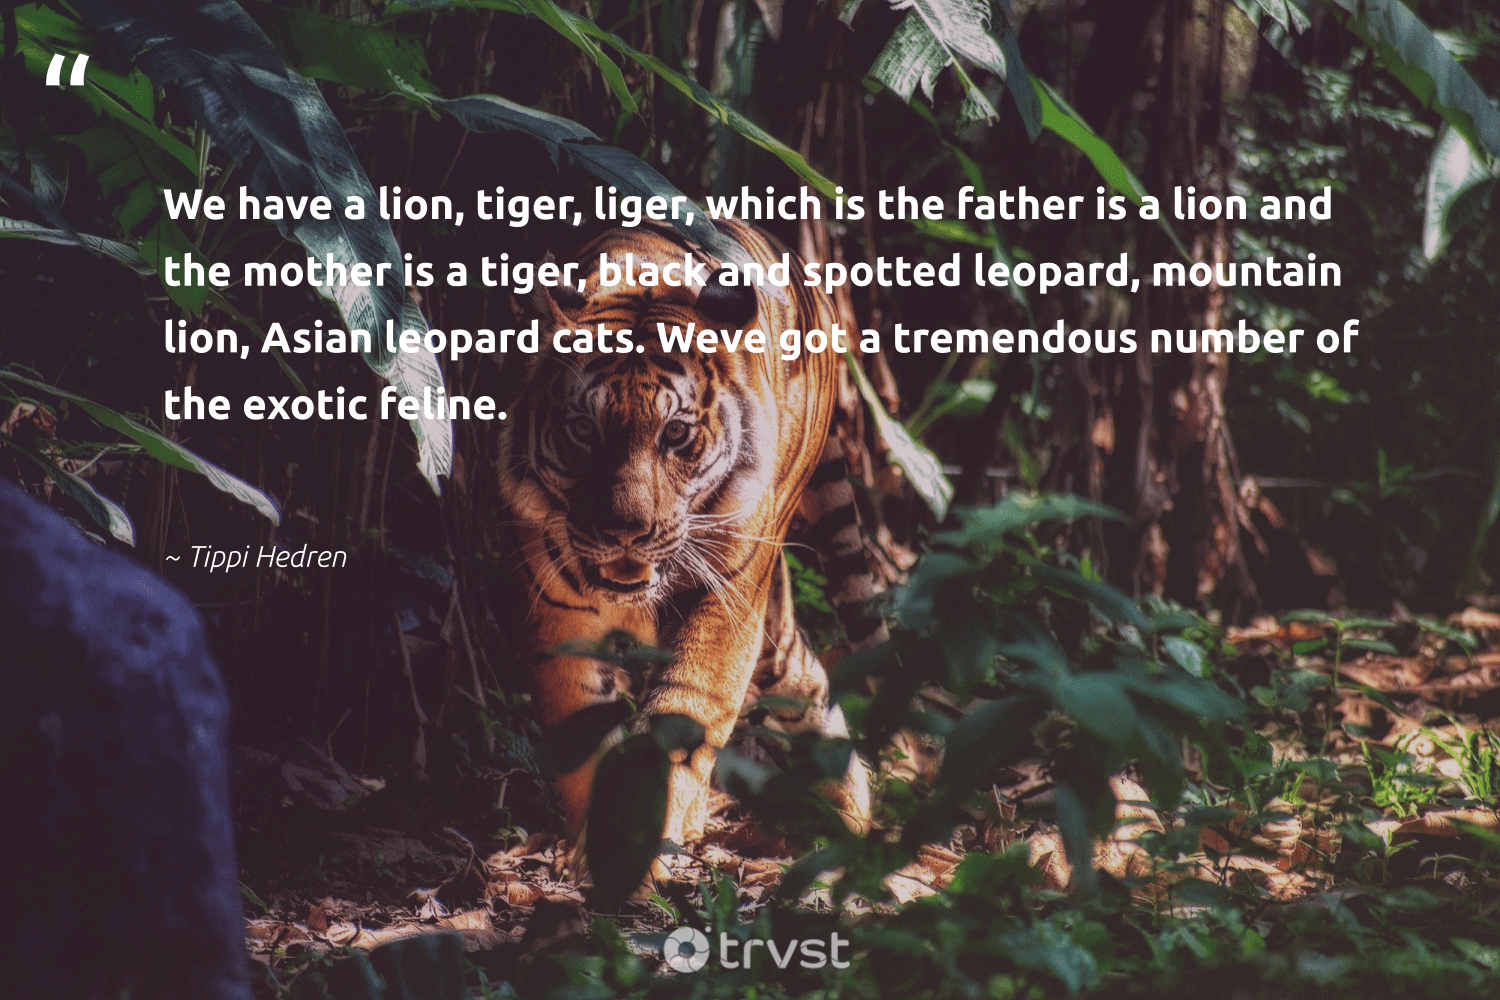 """We have a lion, tiger, liger, which is the father is a lion and the mother is a tiger, black and spotted leopard, mountain lion, Asian leopard cats. Weve got a tremendous number of the exotic feline.""  - Tippi Hedren #trvst #quotes #mountain #tiger #leopard #lion #wildlifeprotection #gogreen #tigers #takeaction #ourplanetdaily #planetearthfirst"